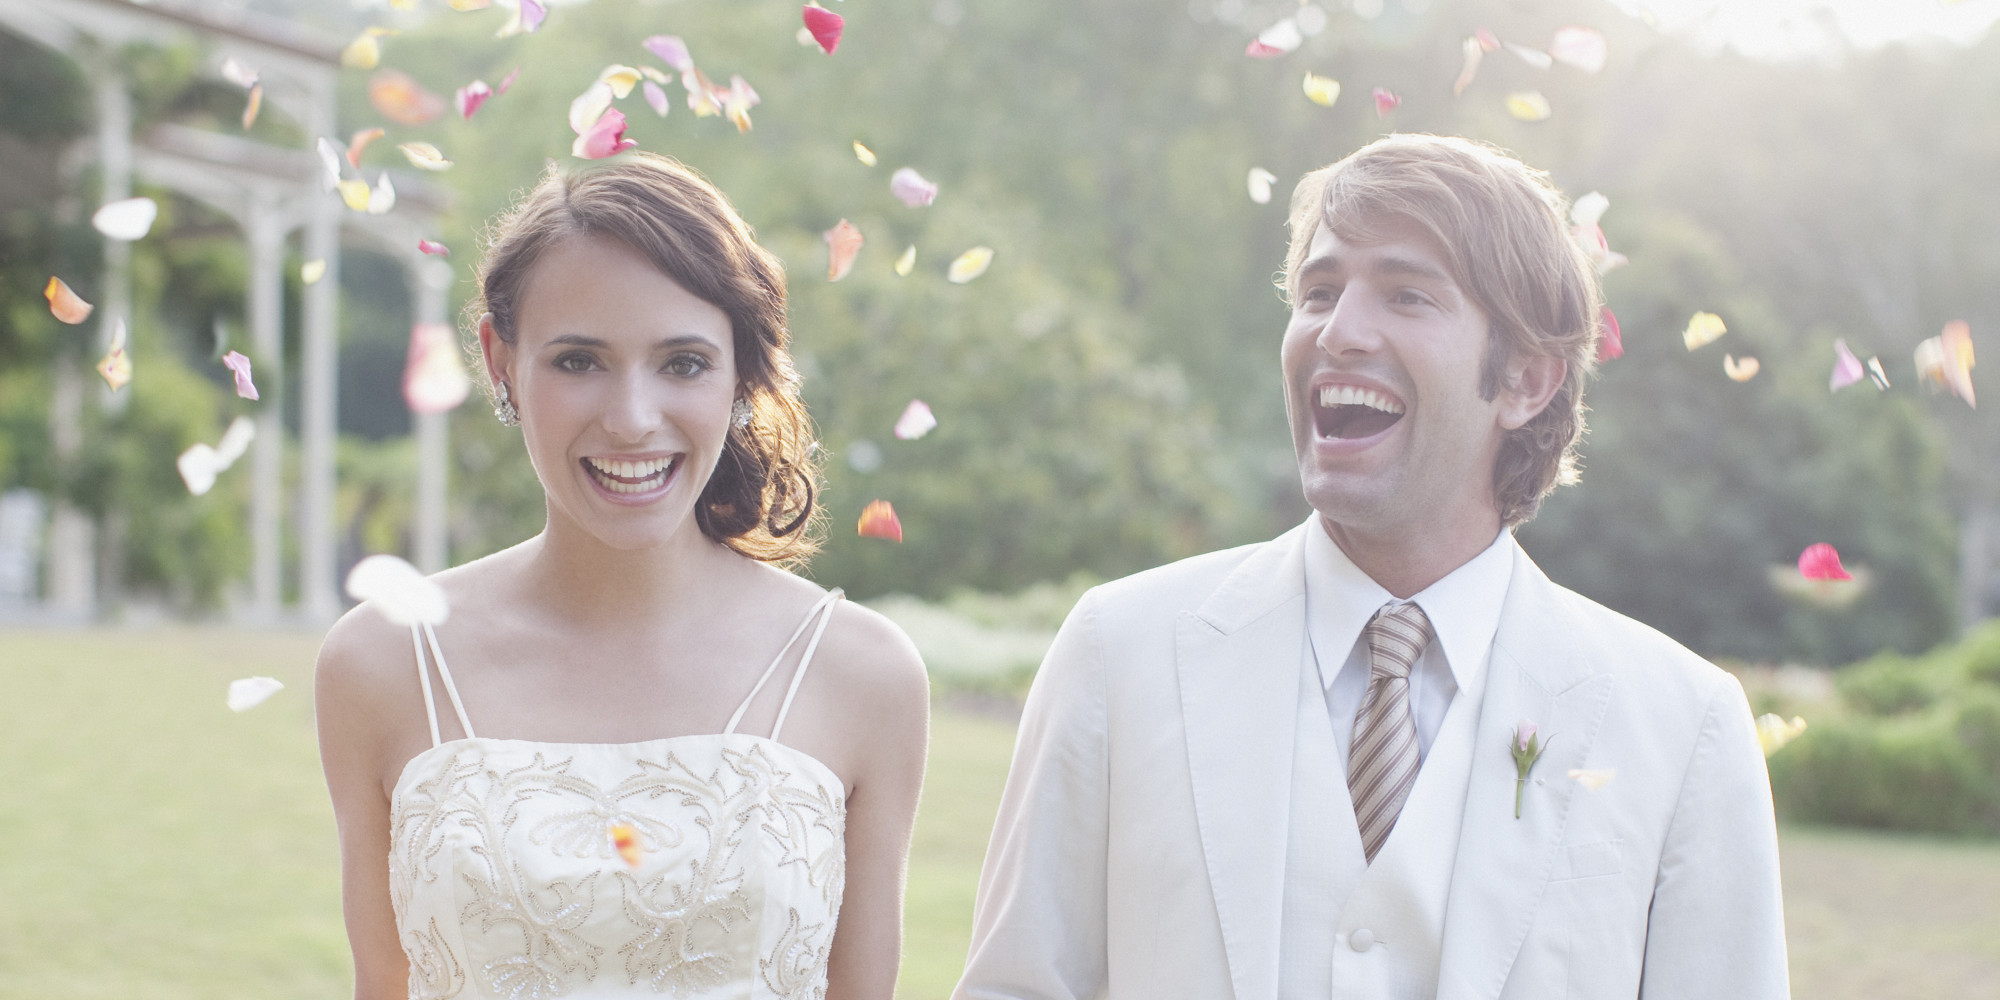 30 Songs To Walk Down The Aisle To On Your Wedding Day